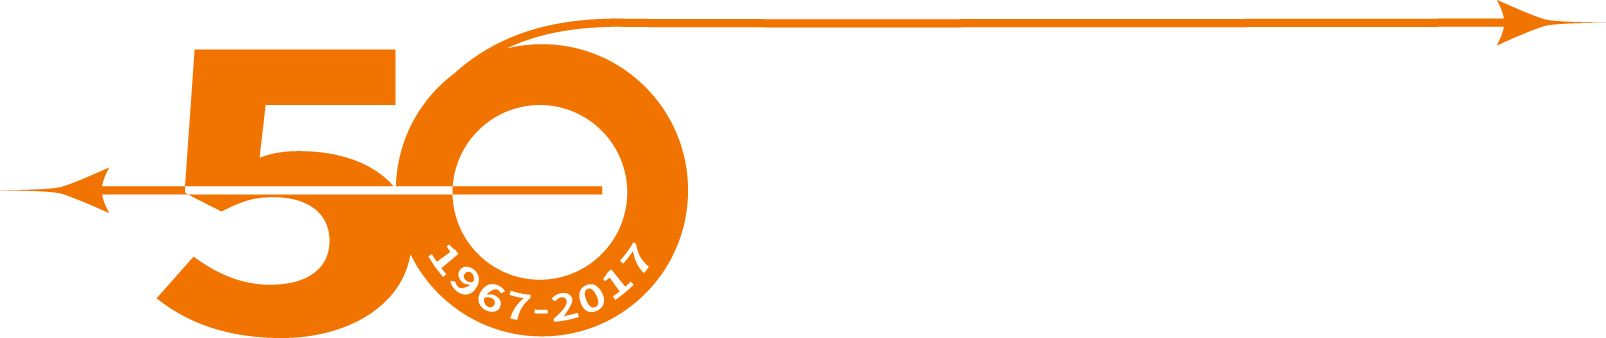 vulcan-logo_50th_orange-white.png